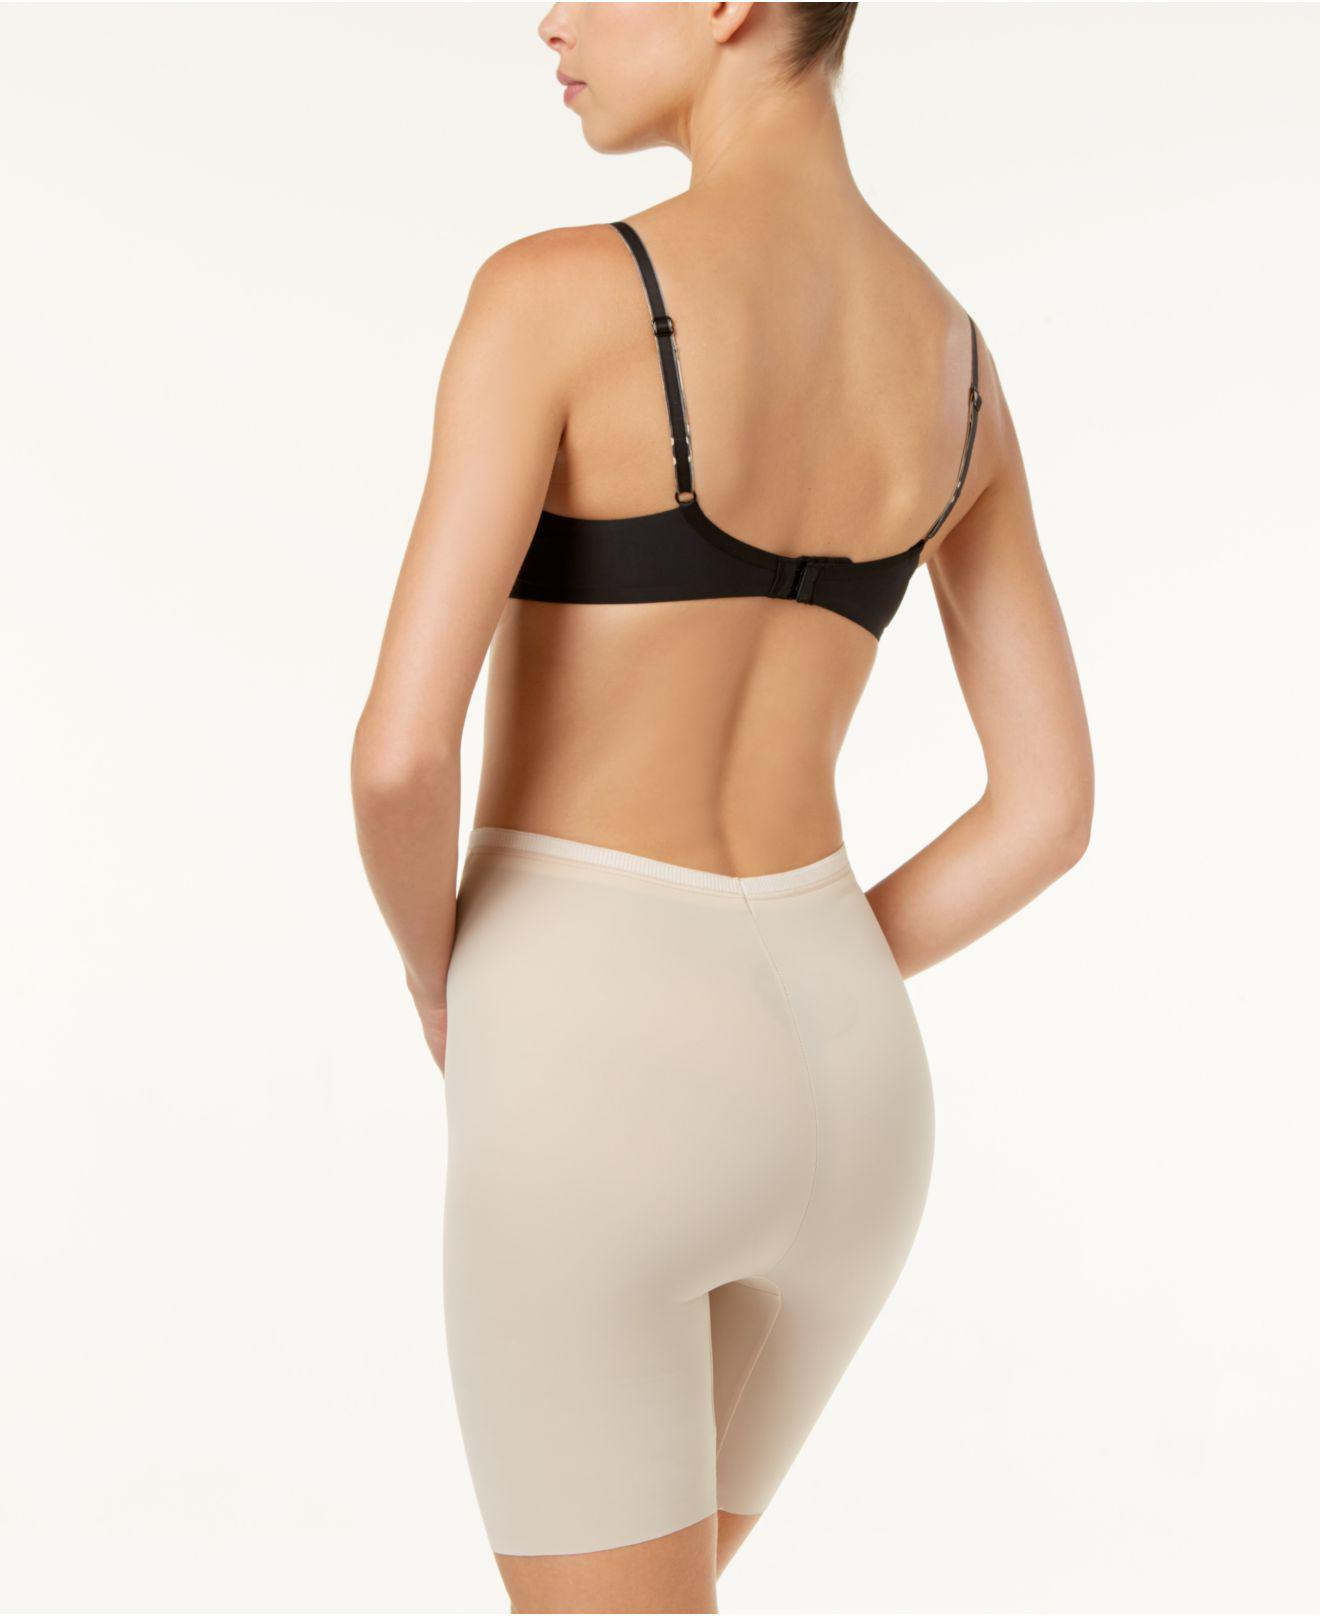 bcf4c5b683 Lyst - Maidenform Firm Foundations Firm Control Thigh Slimmer Dm5005 in  Natural